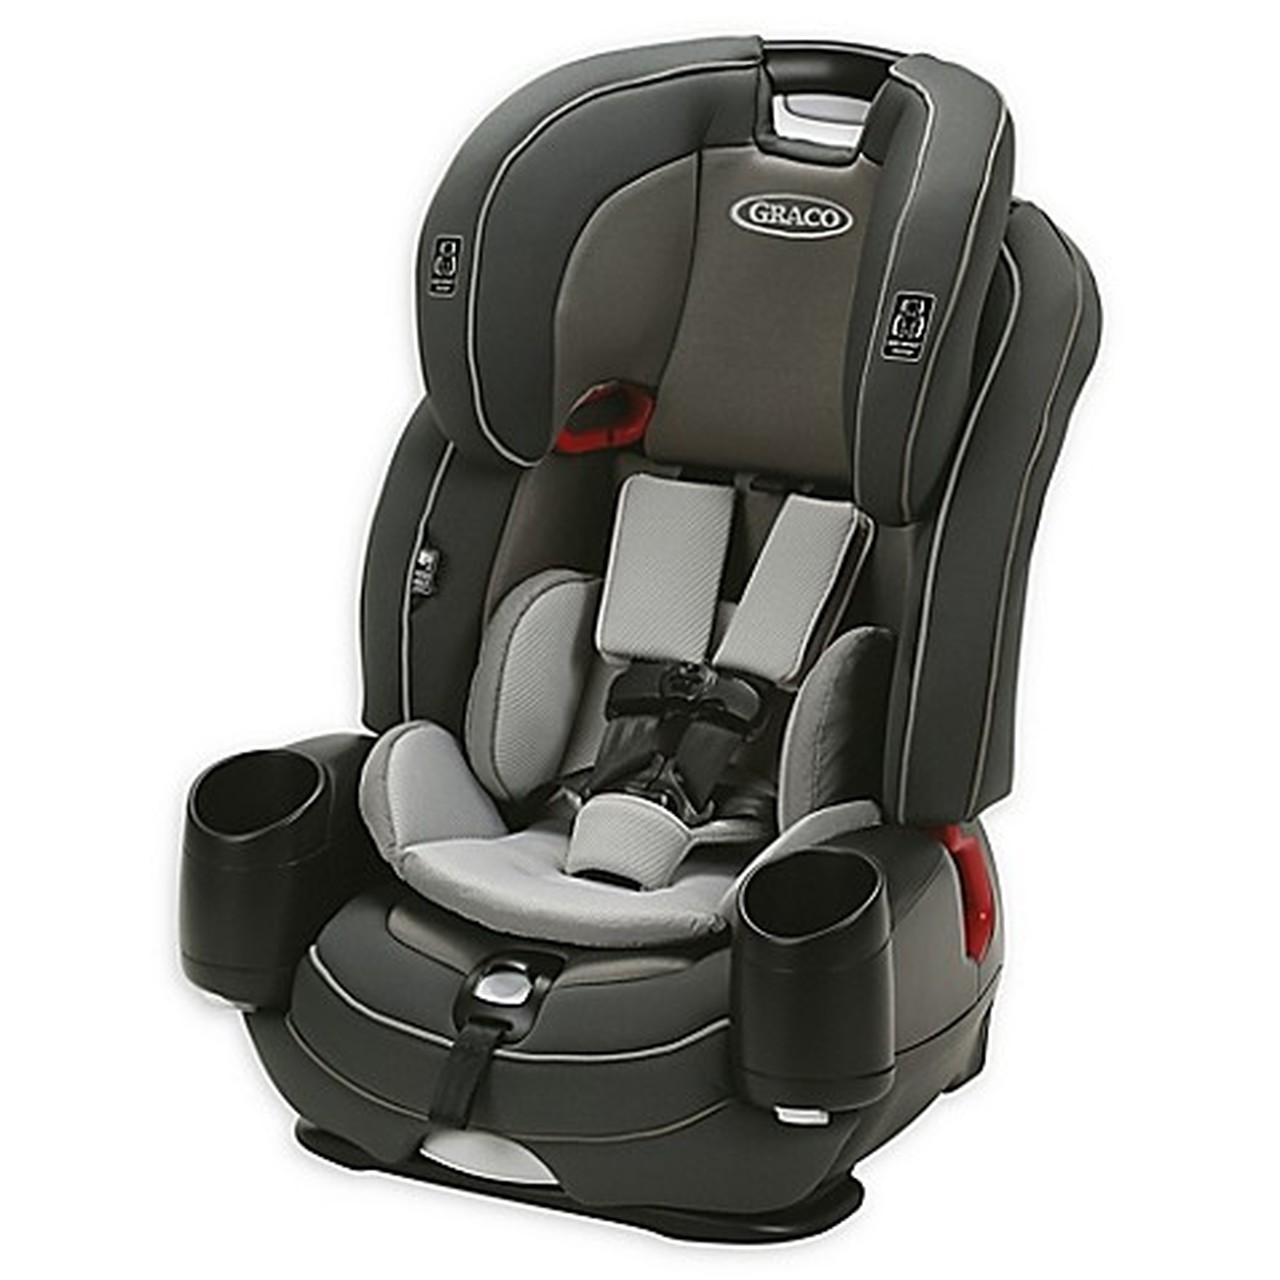 Graco® Nautilus® SnugLock® LX 3-in-1 Harness Booster Seat